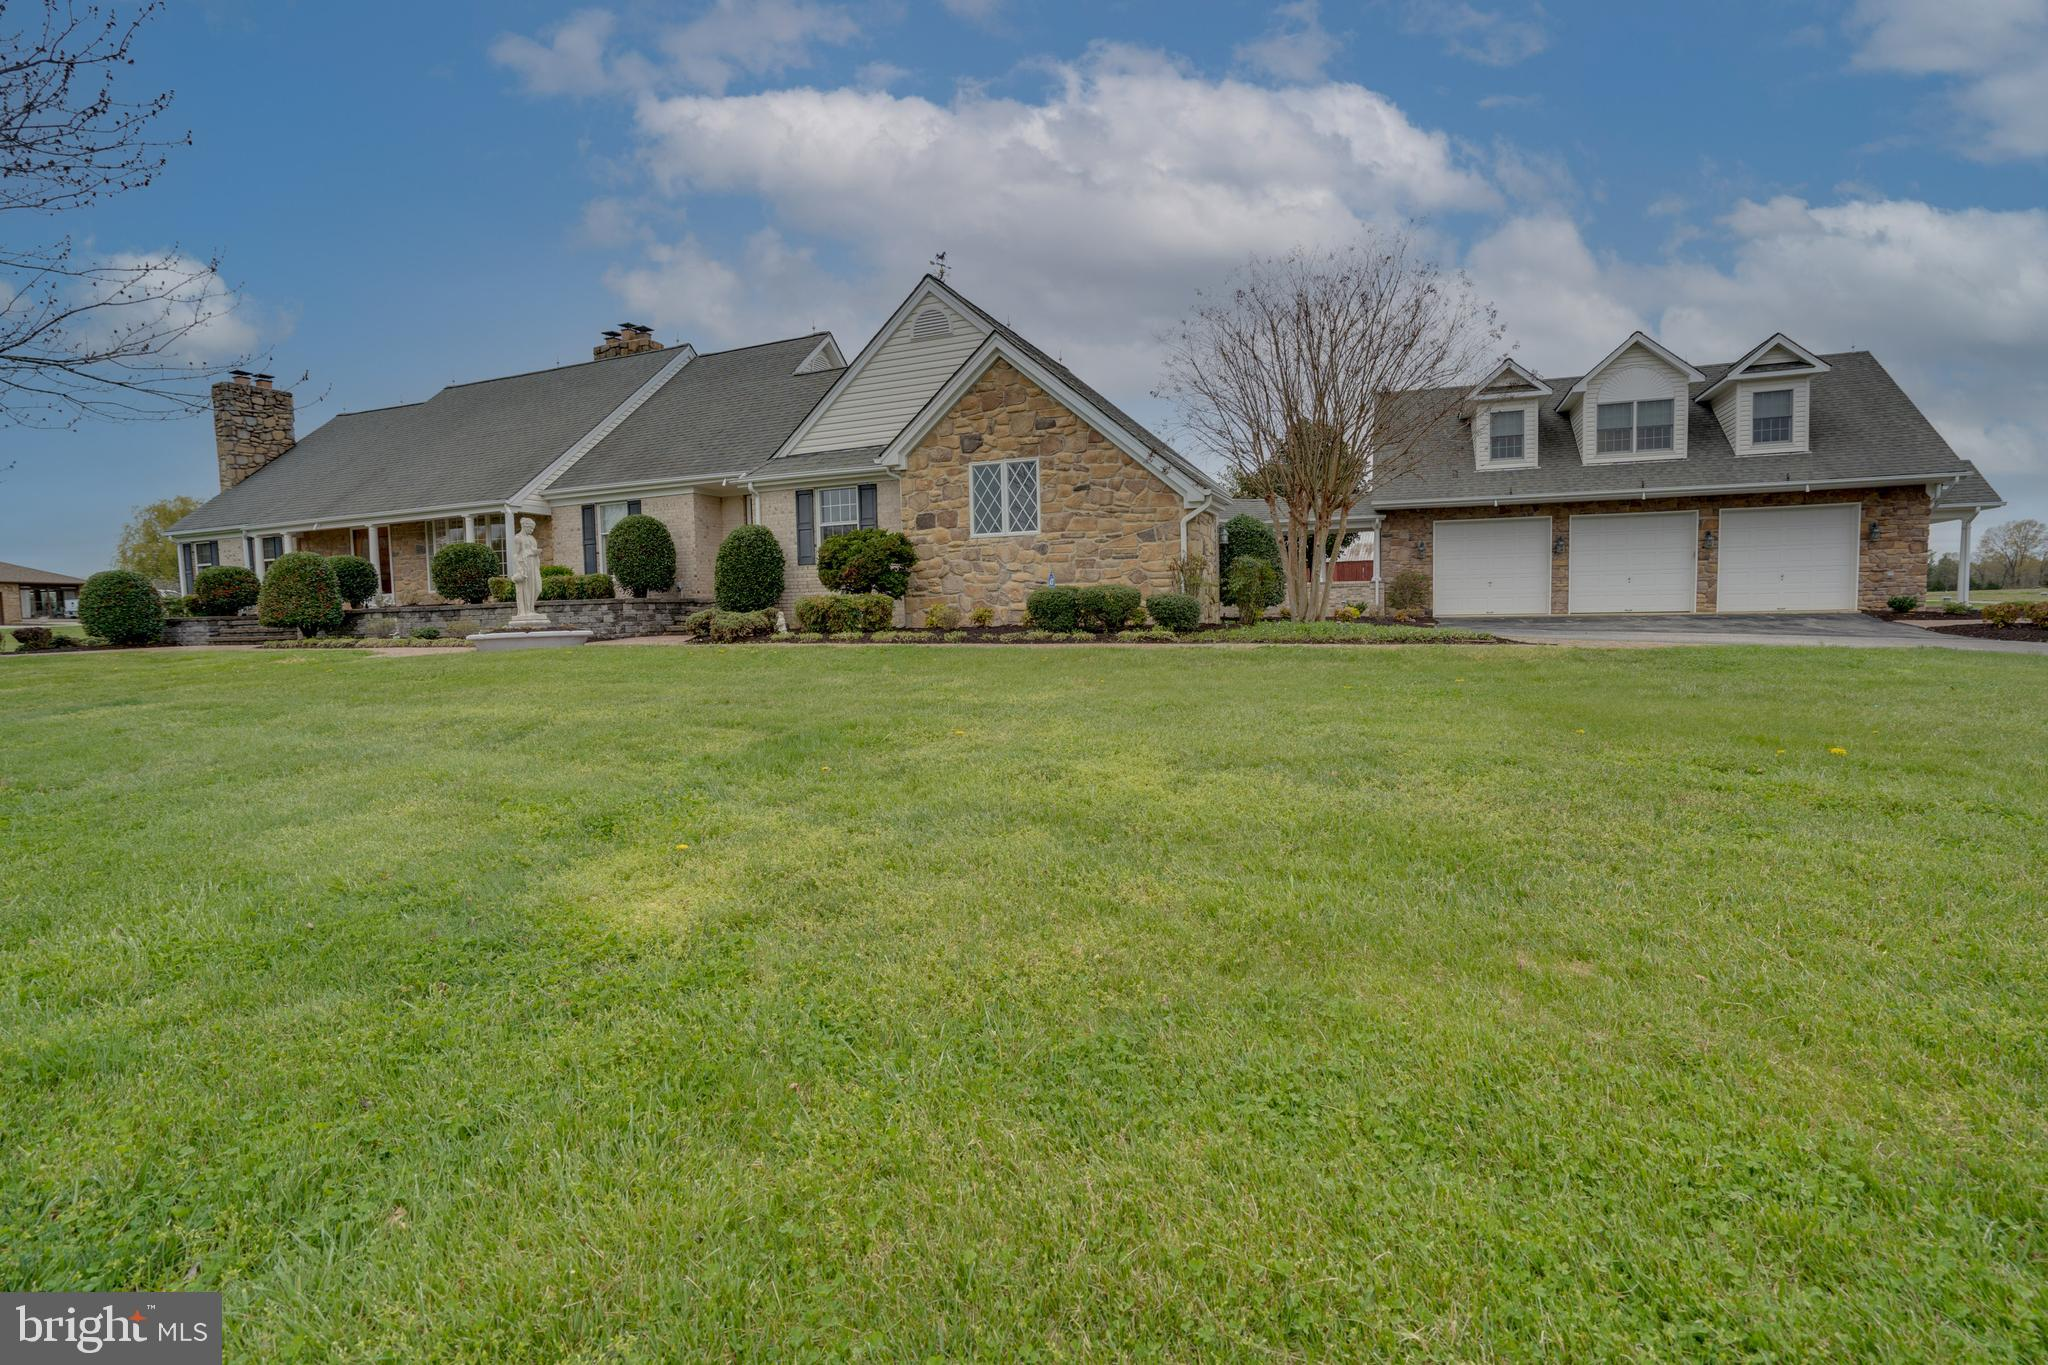 Gorgeous Brick & Stone 2 story 4 bedroom 3 .5 bath Home on 3.17 acres with 2 car Attached Garage and